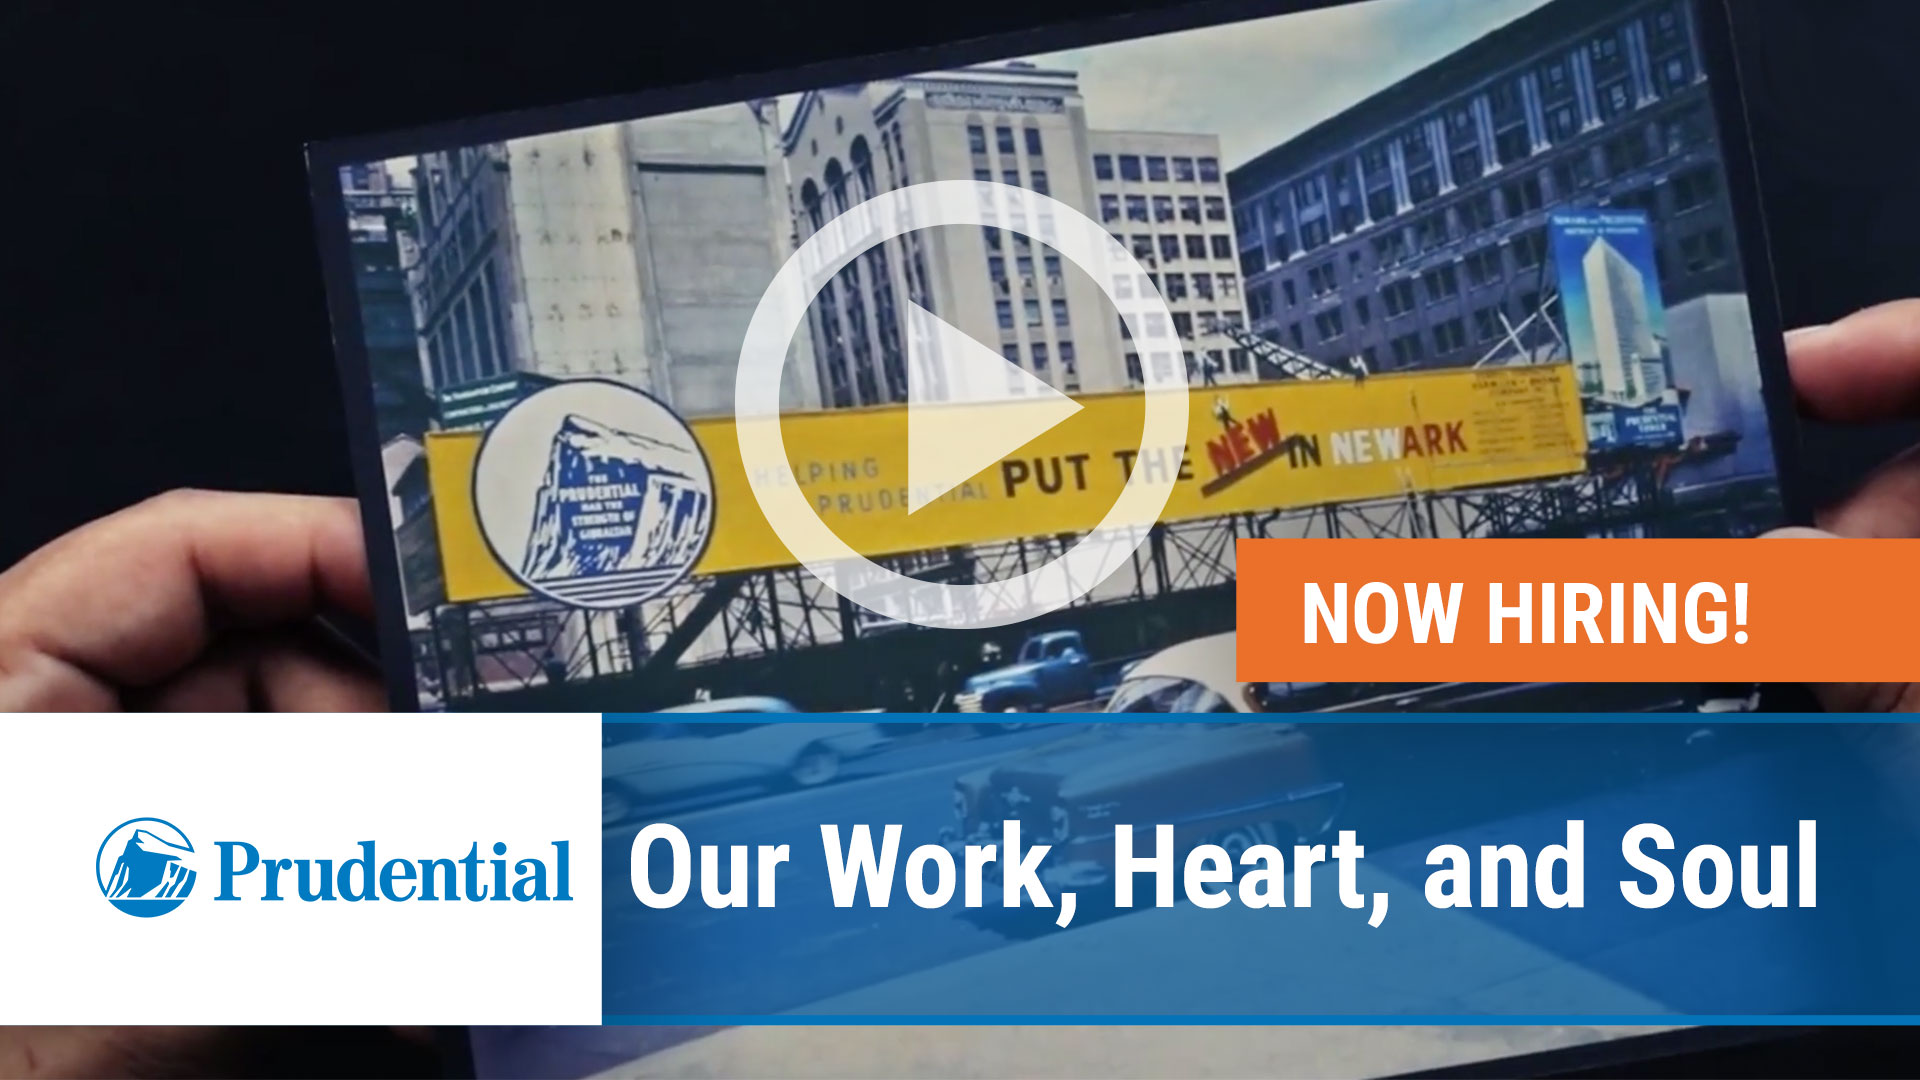 Watch our careers video for available job opening Our Work, Heart, and Soul in Portland ME, Scottsdale AZ, Roseland NJ